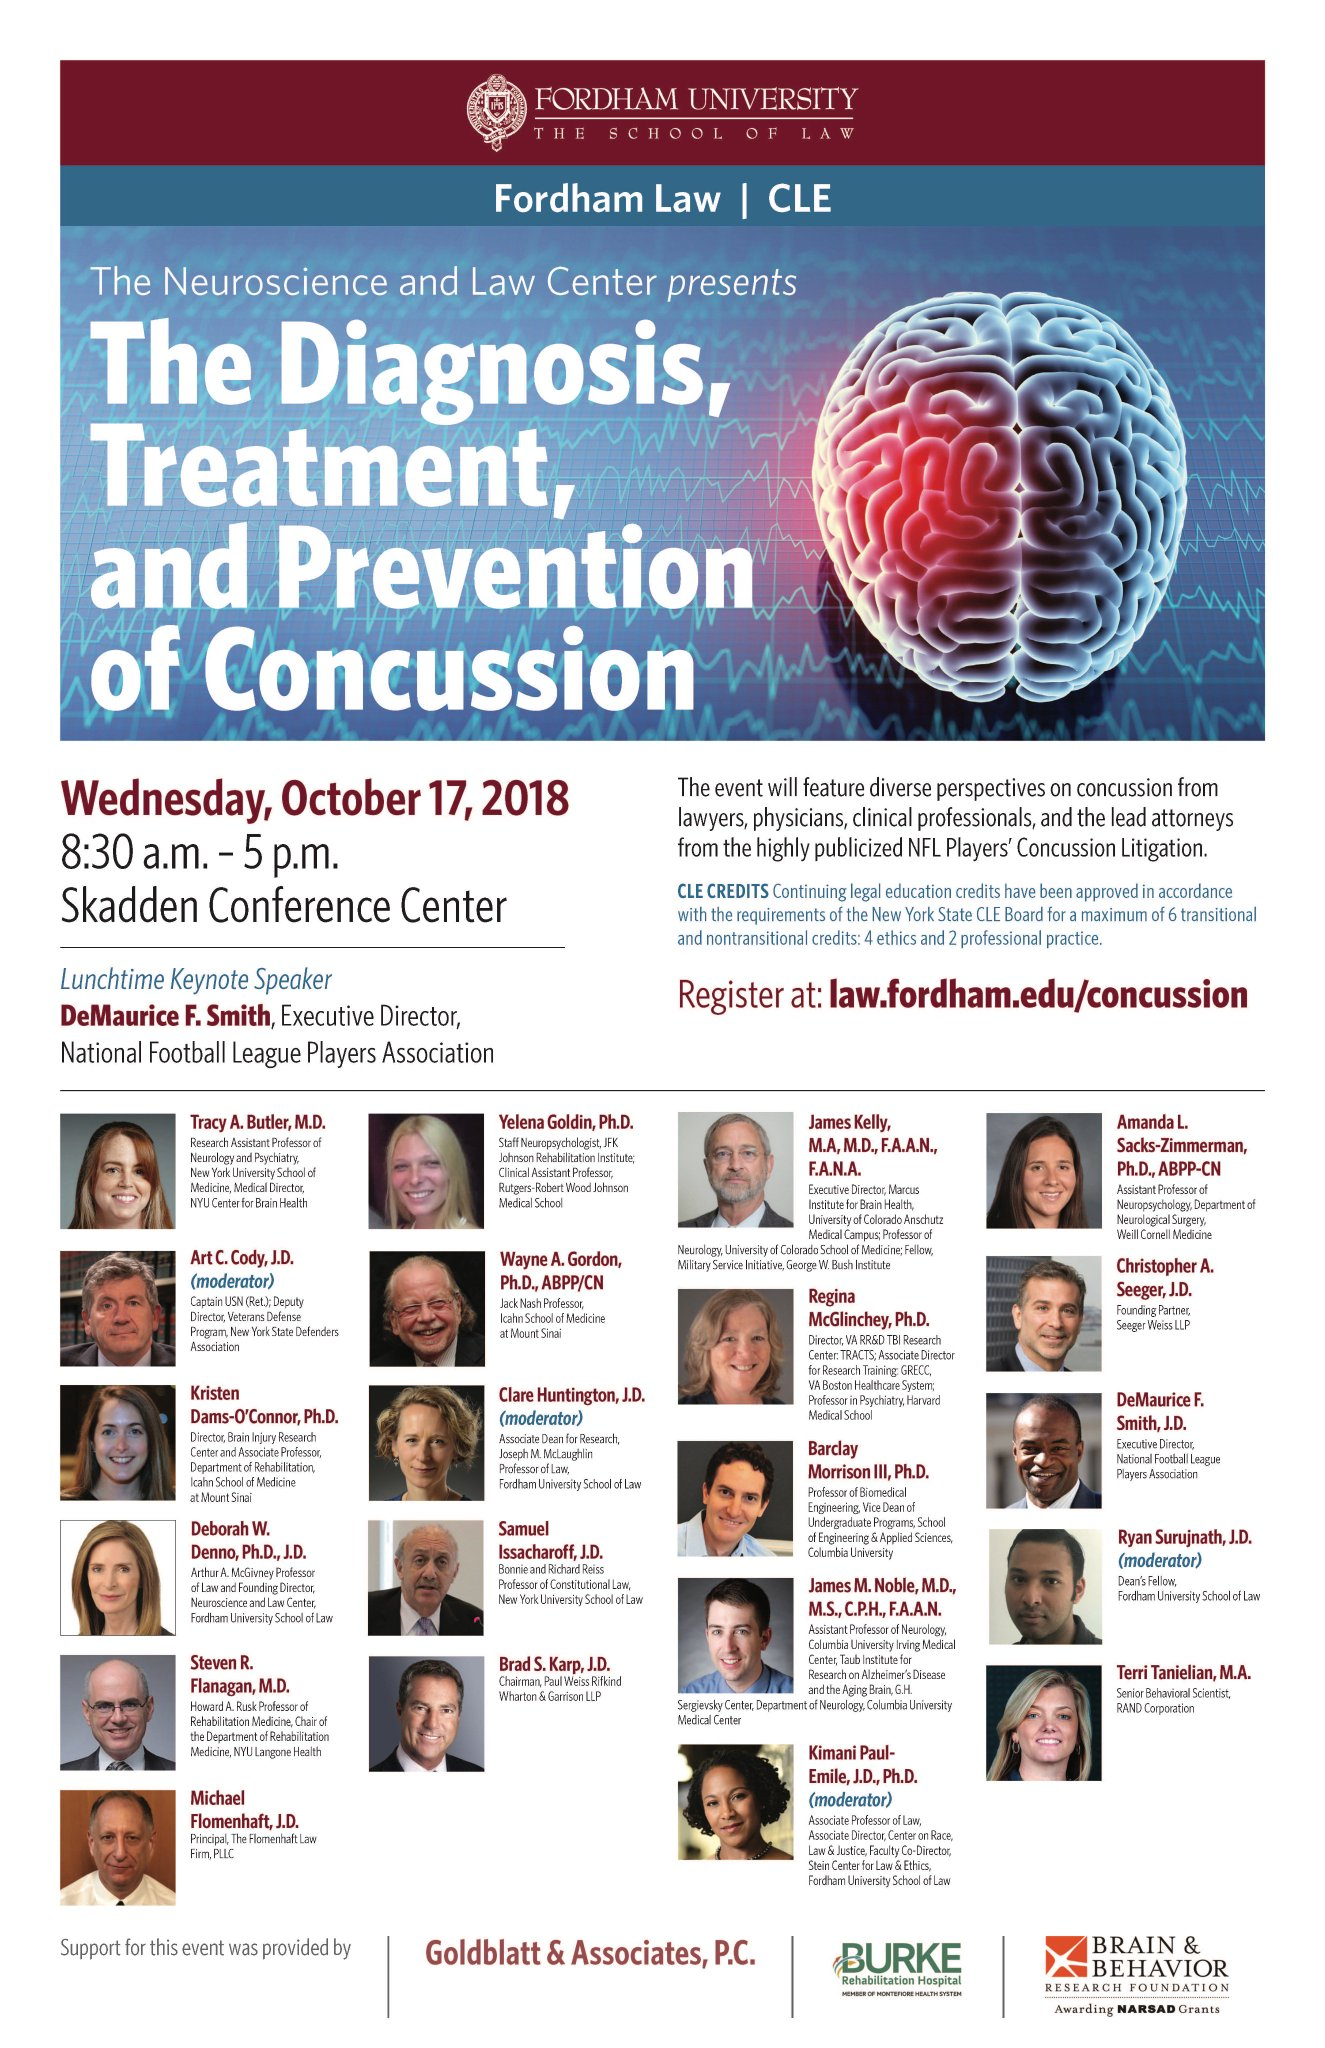 Weill Cornell Neurology on Twitter: